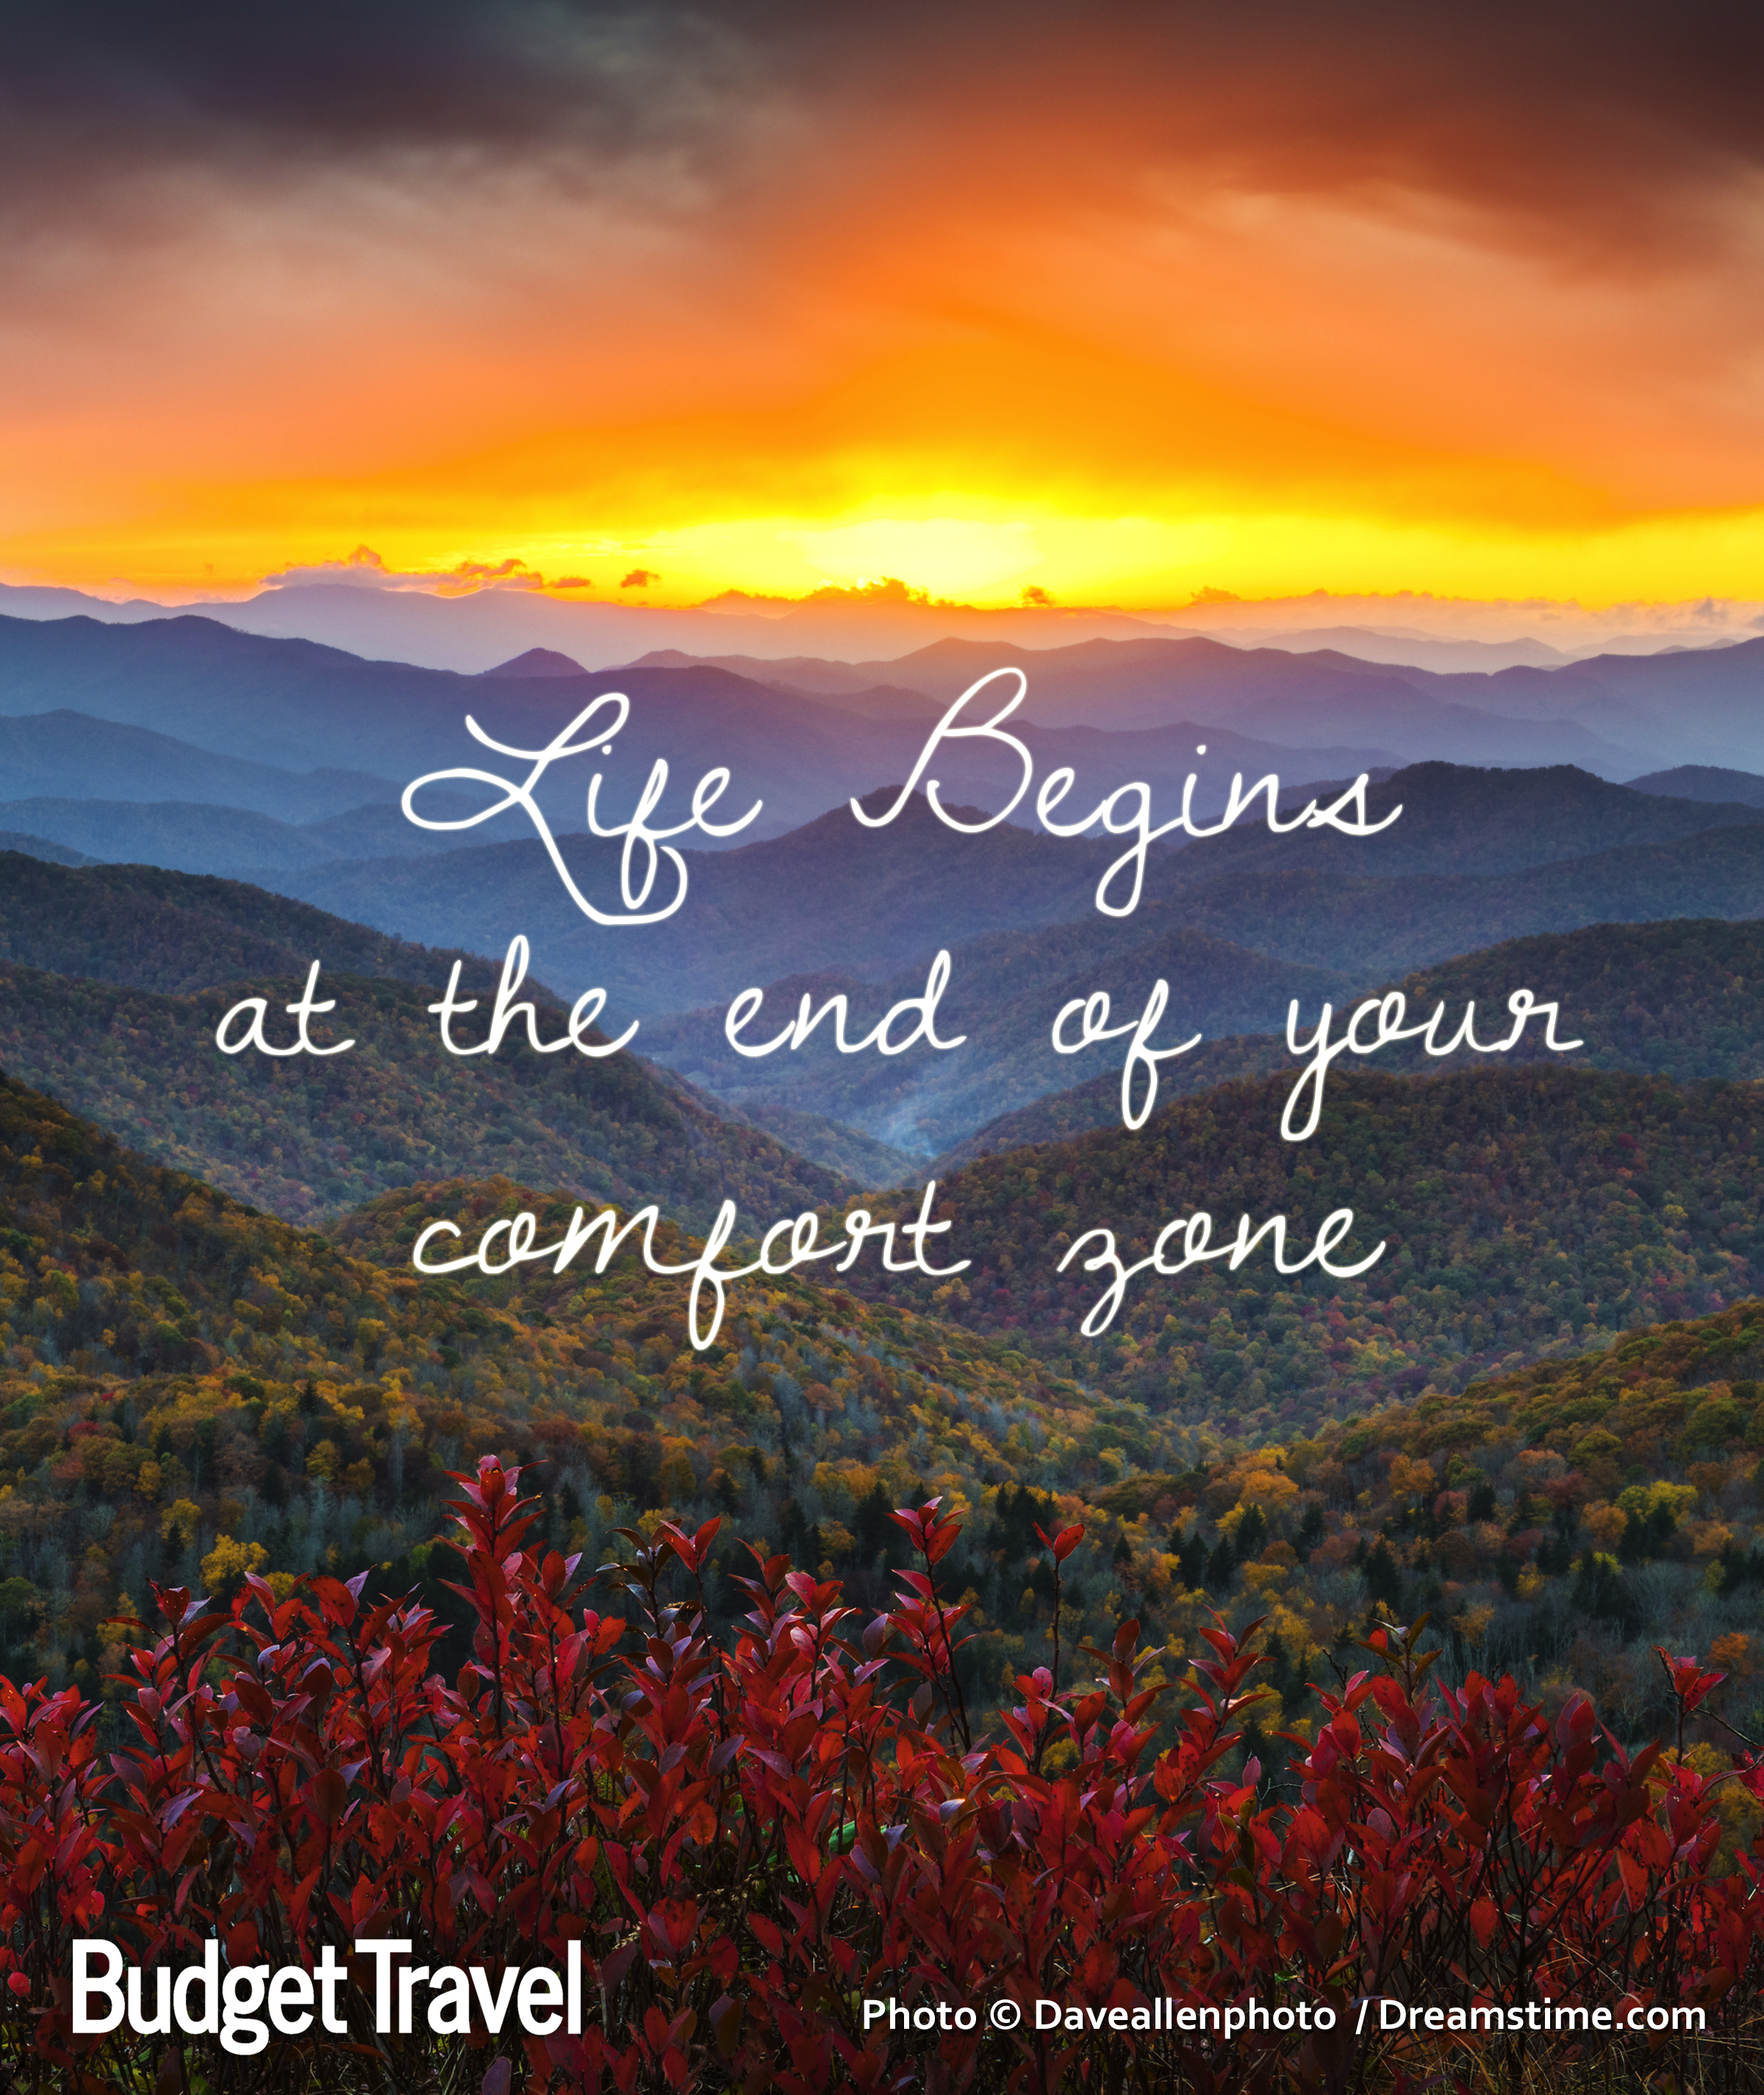 life-begins-at-the-end-of-your-comfort-zone-travel-quote-472015-191130_original